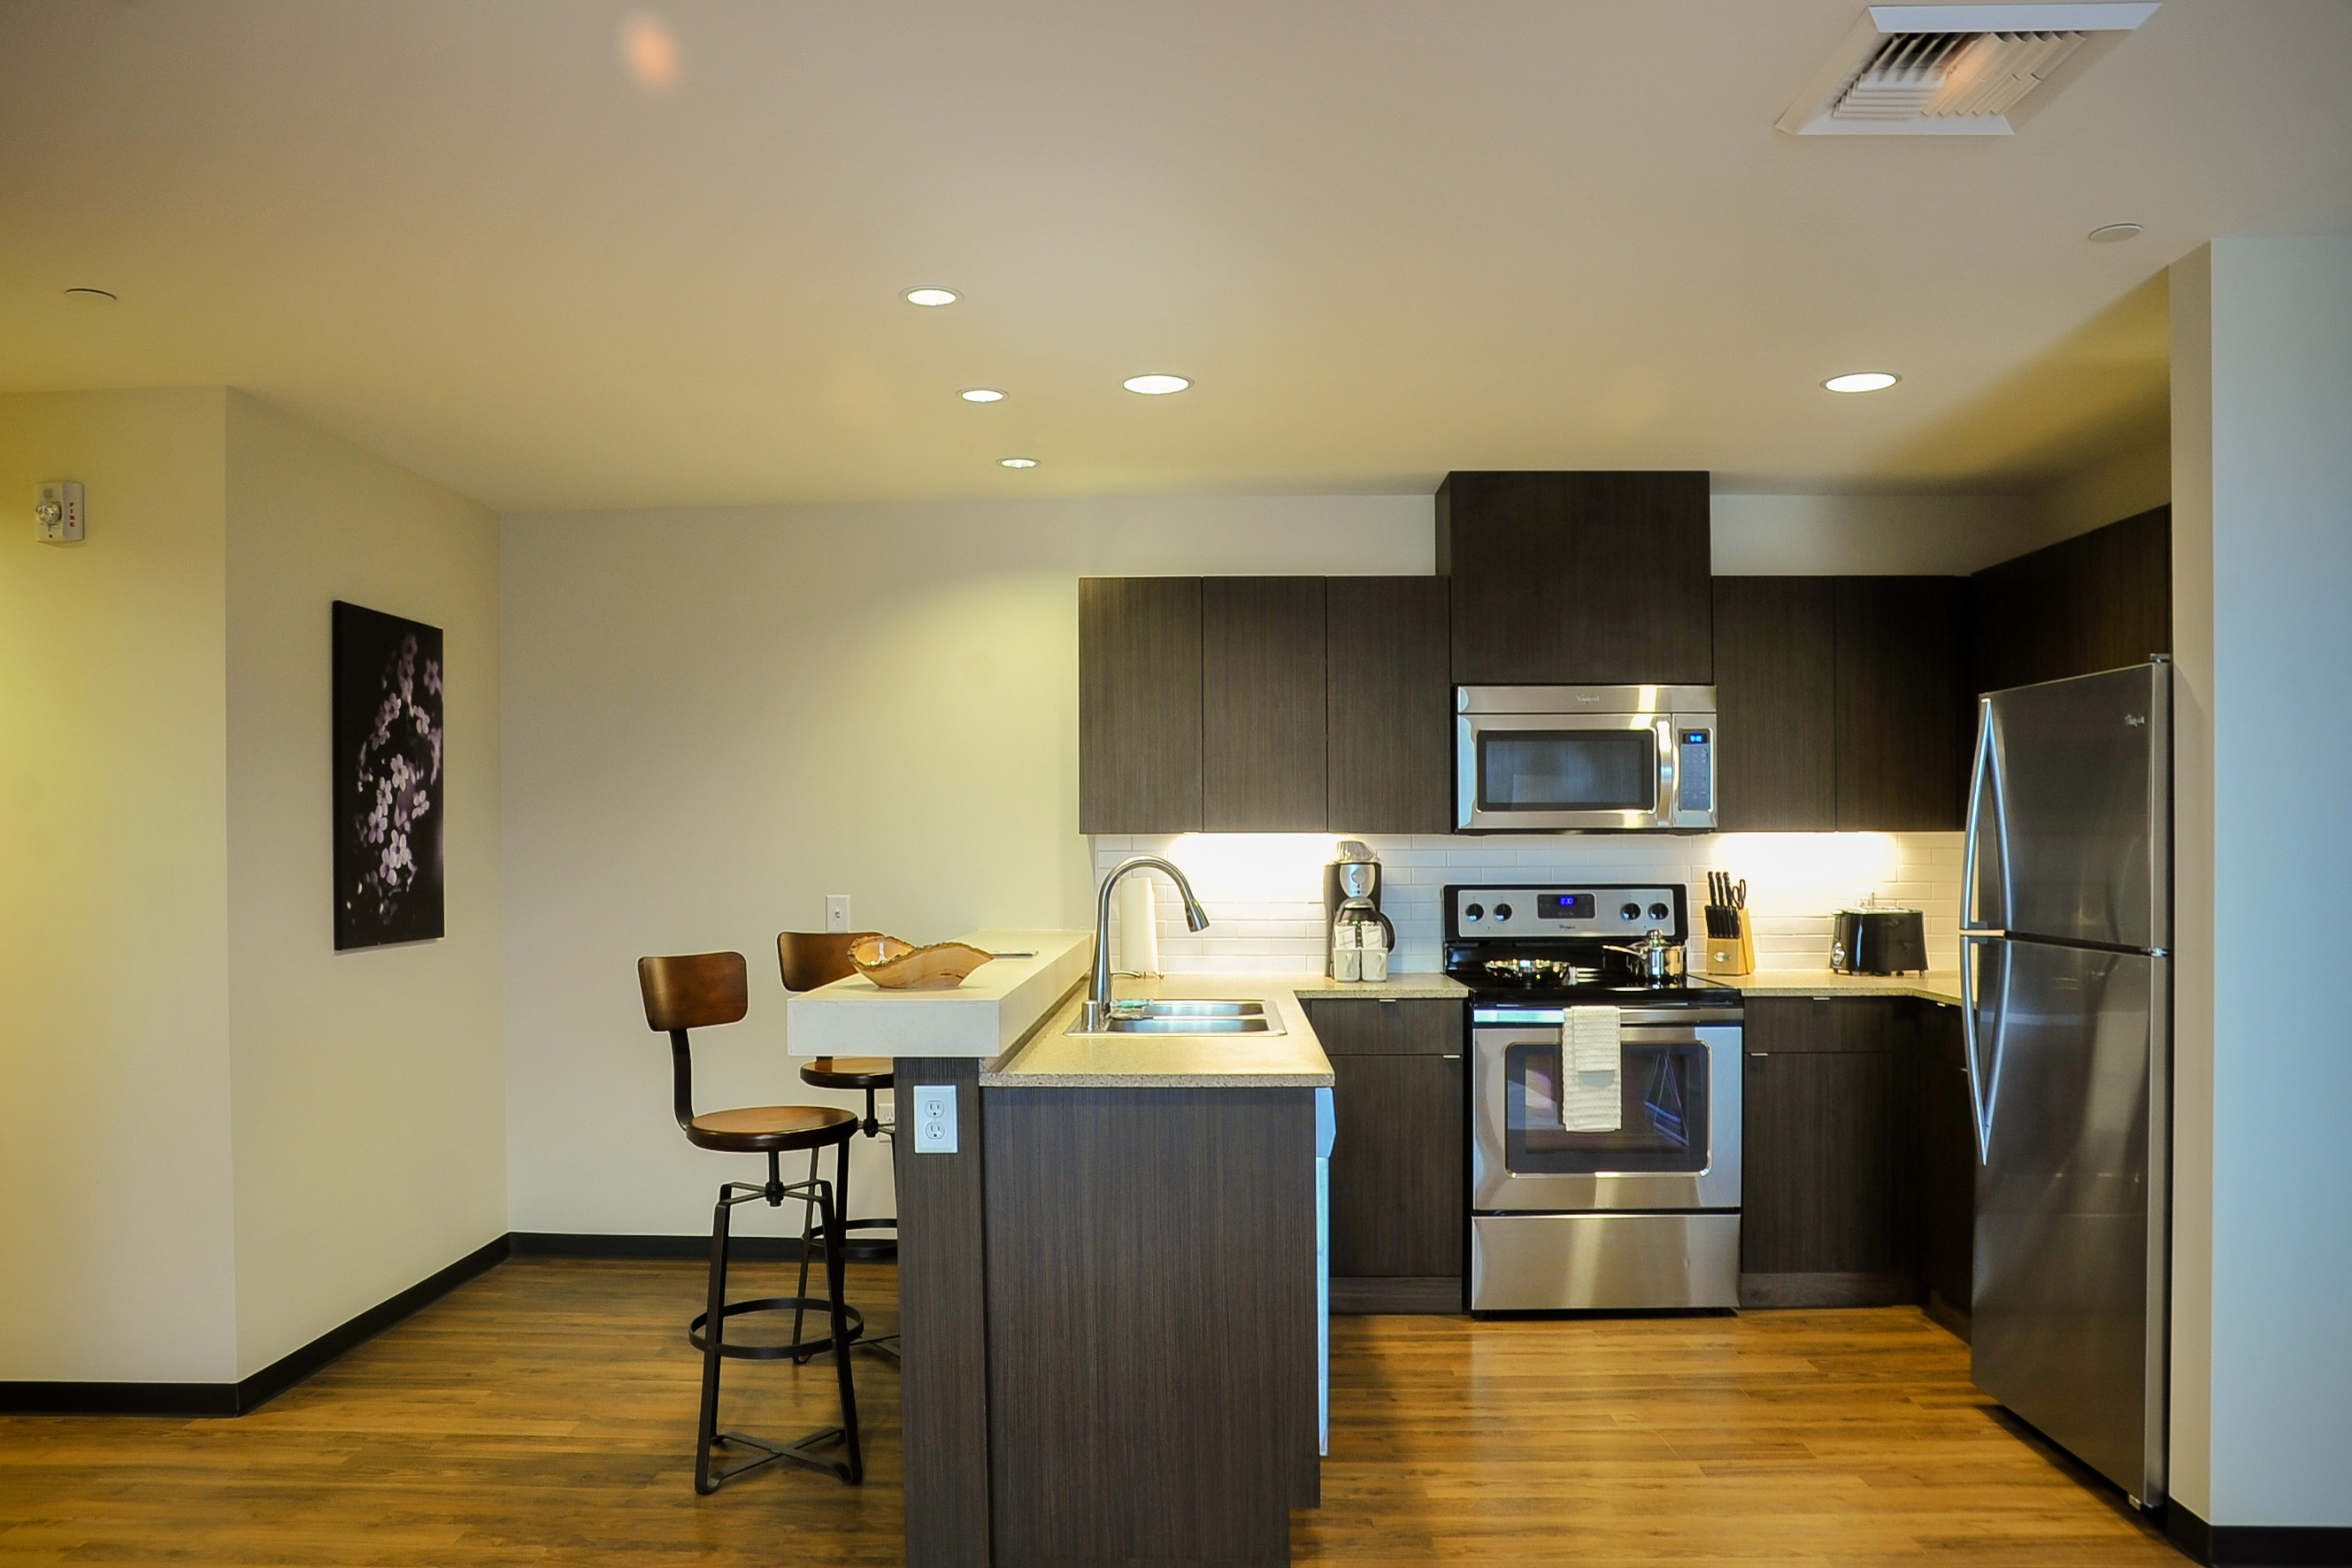 A Kitchen in a Ruby Suites unit